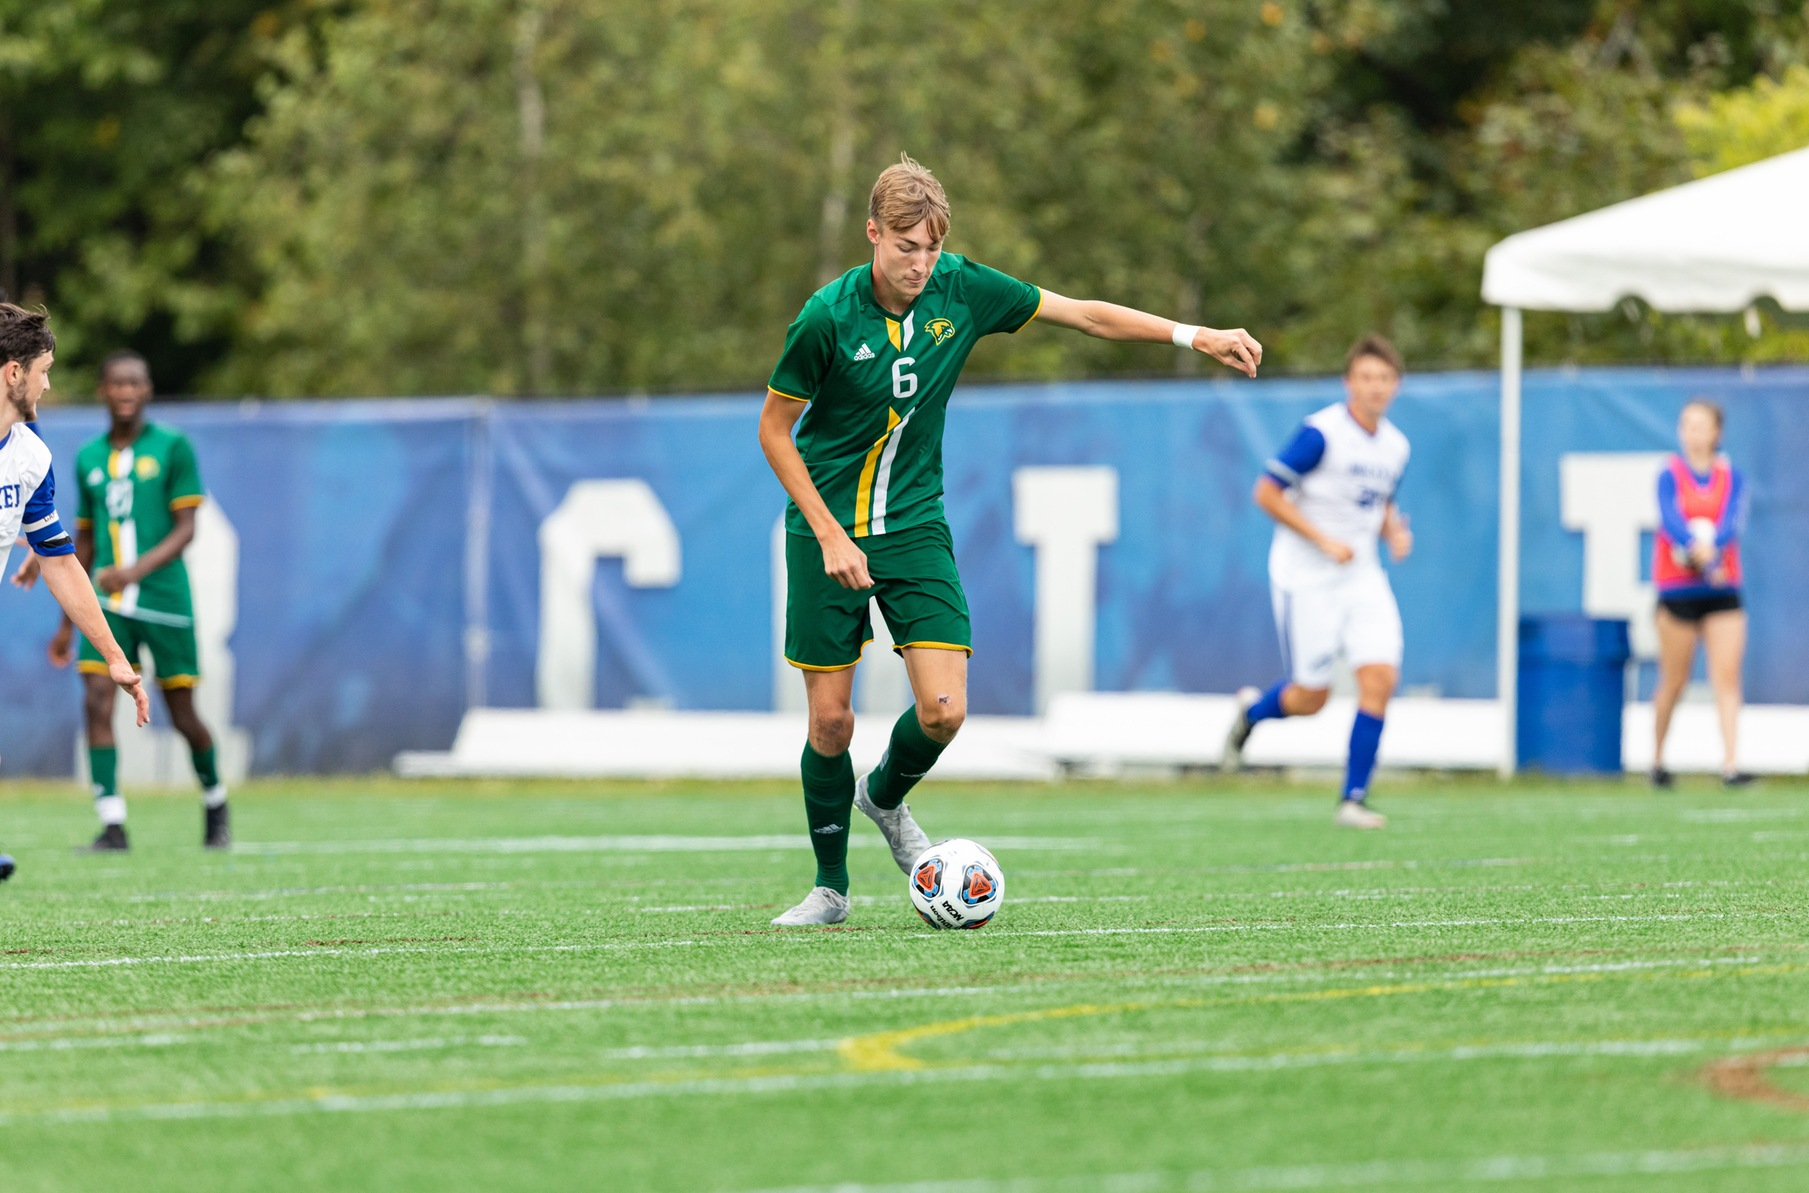 Falcons Hold Off Fighting Scots, 2-1